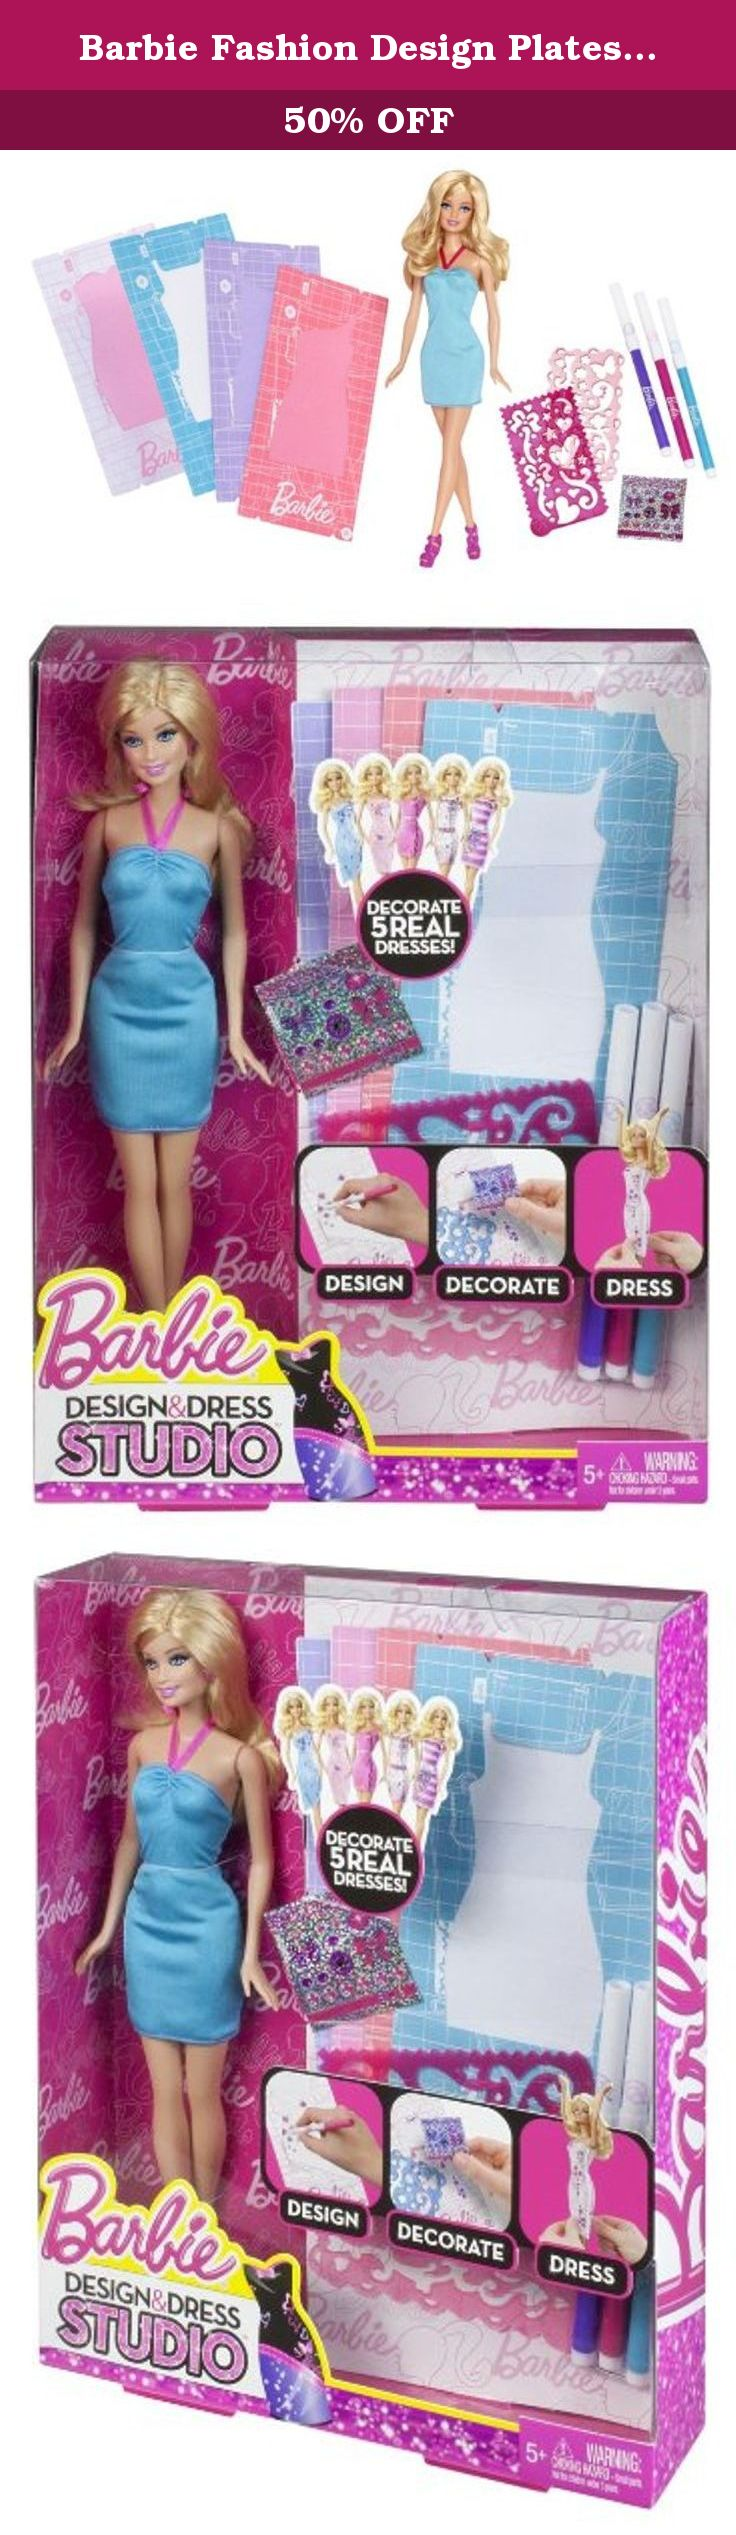 Barbie Fashion Design Plates Dress And Doll The Barbie Design Dress Studio Doll Allows Girls To Design Re Fashion Design Dress Fashion Design Barbie Fashion